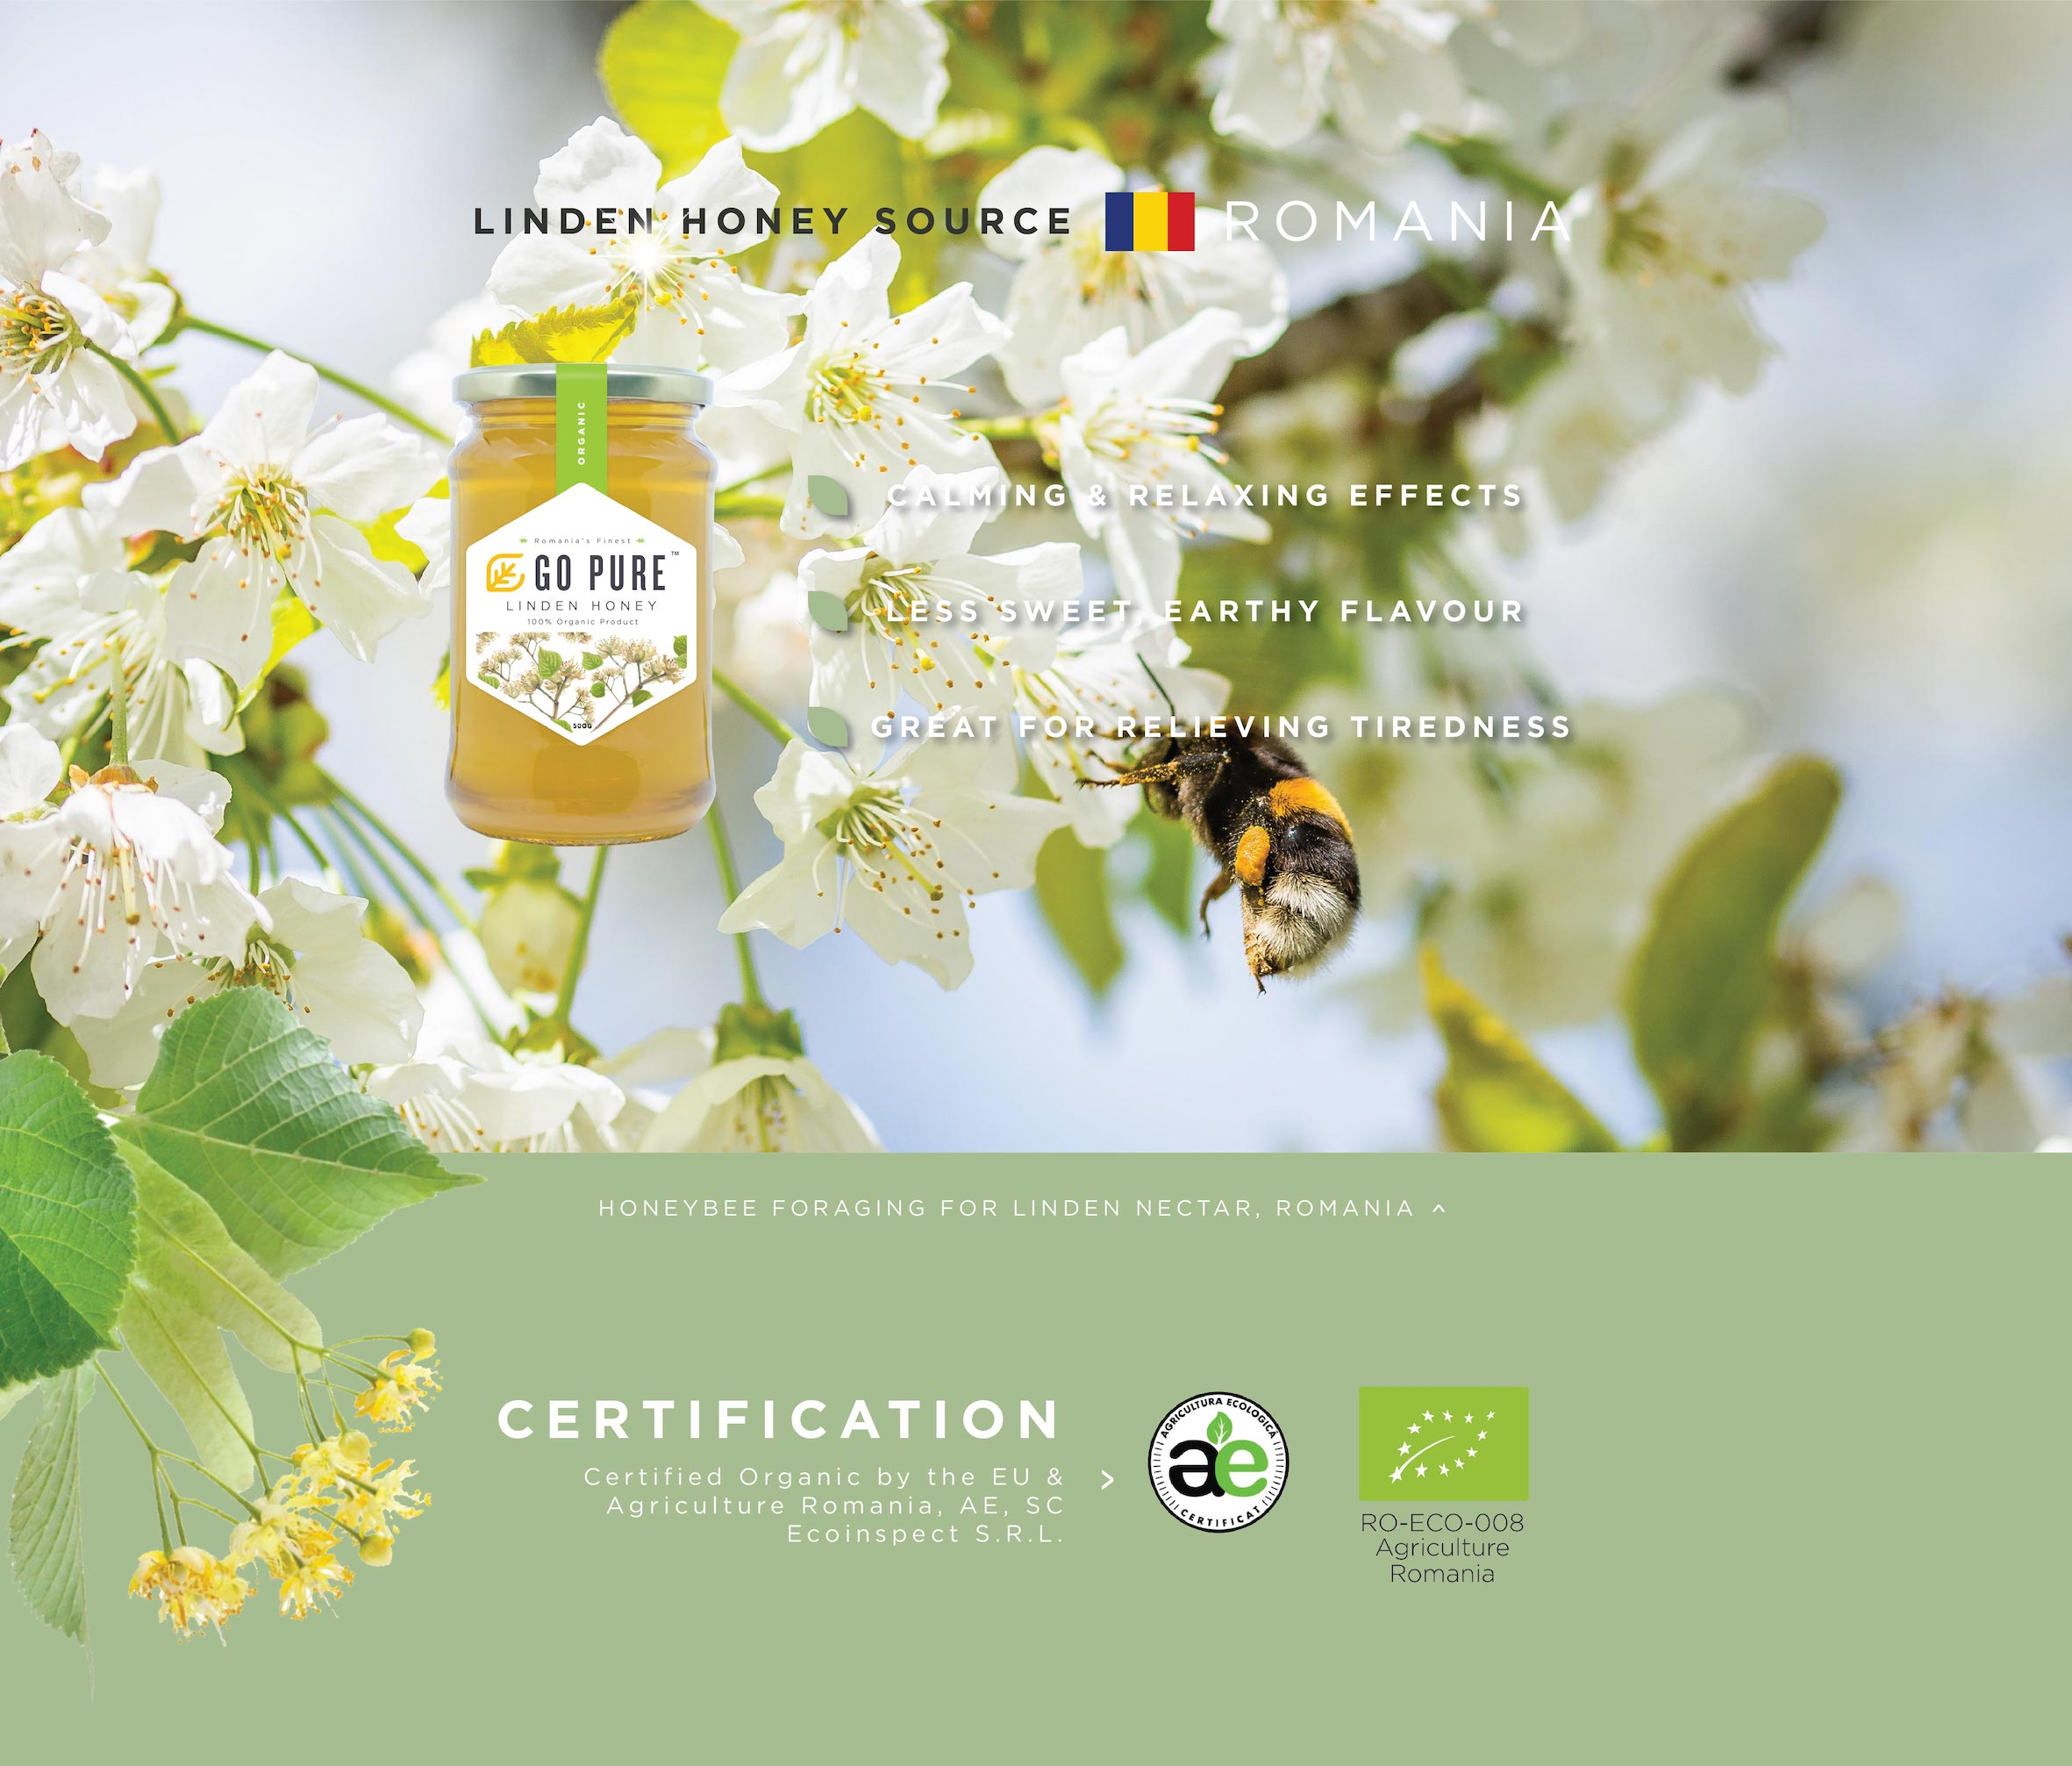 linden honey source from Romania. calming and relaxing effects, less sweet & earthy flavor, great for reliving tiredness. honeybee foraging for linden nectar, romania.